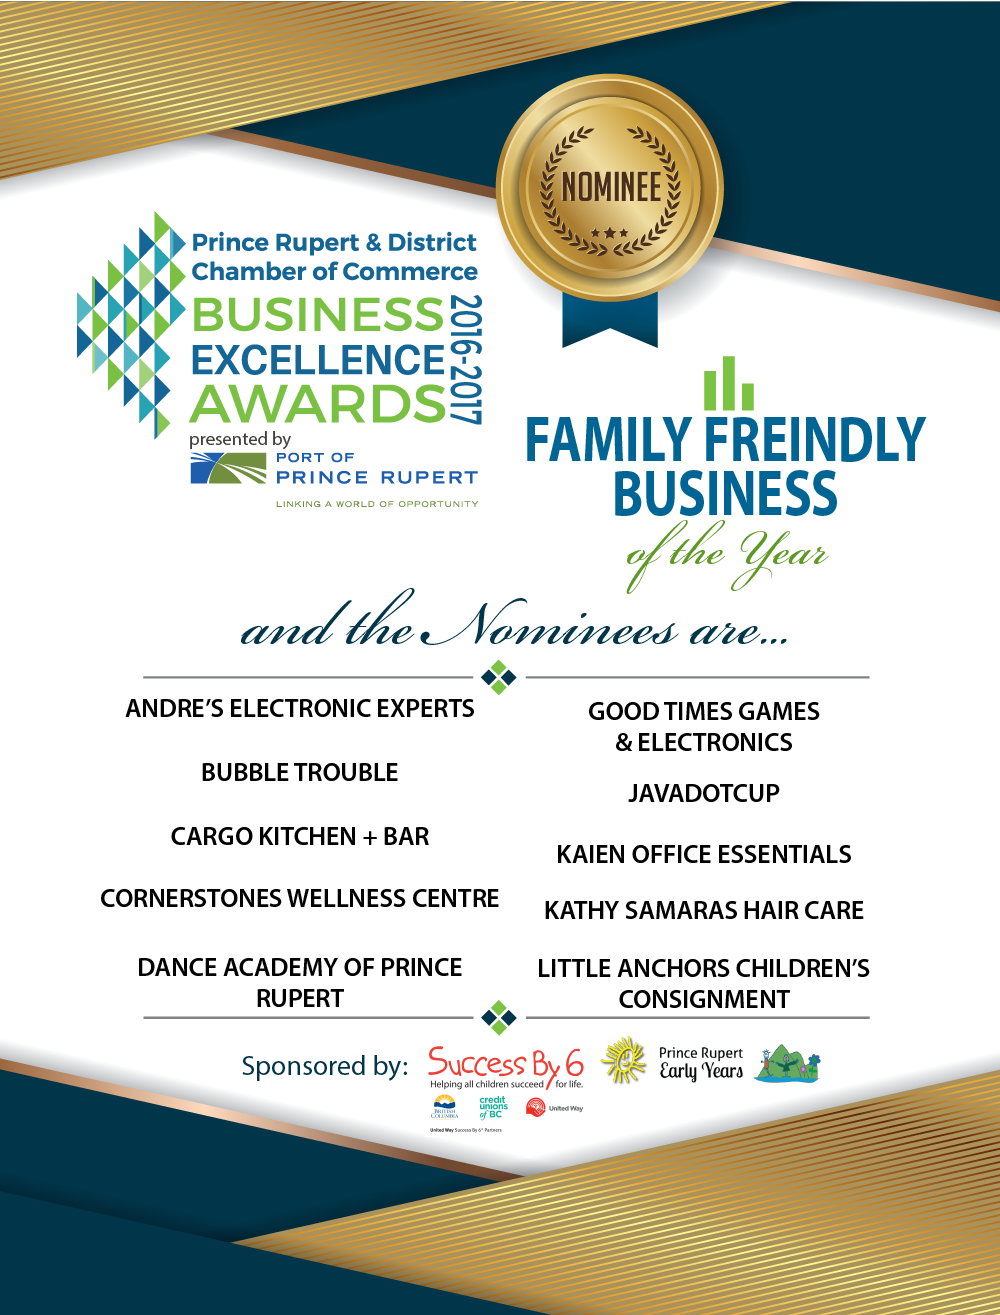 Family Friendly Business of the Year